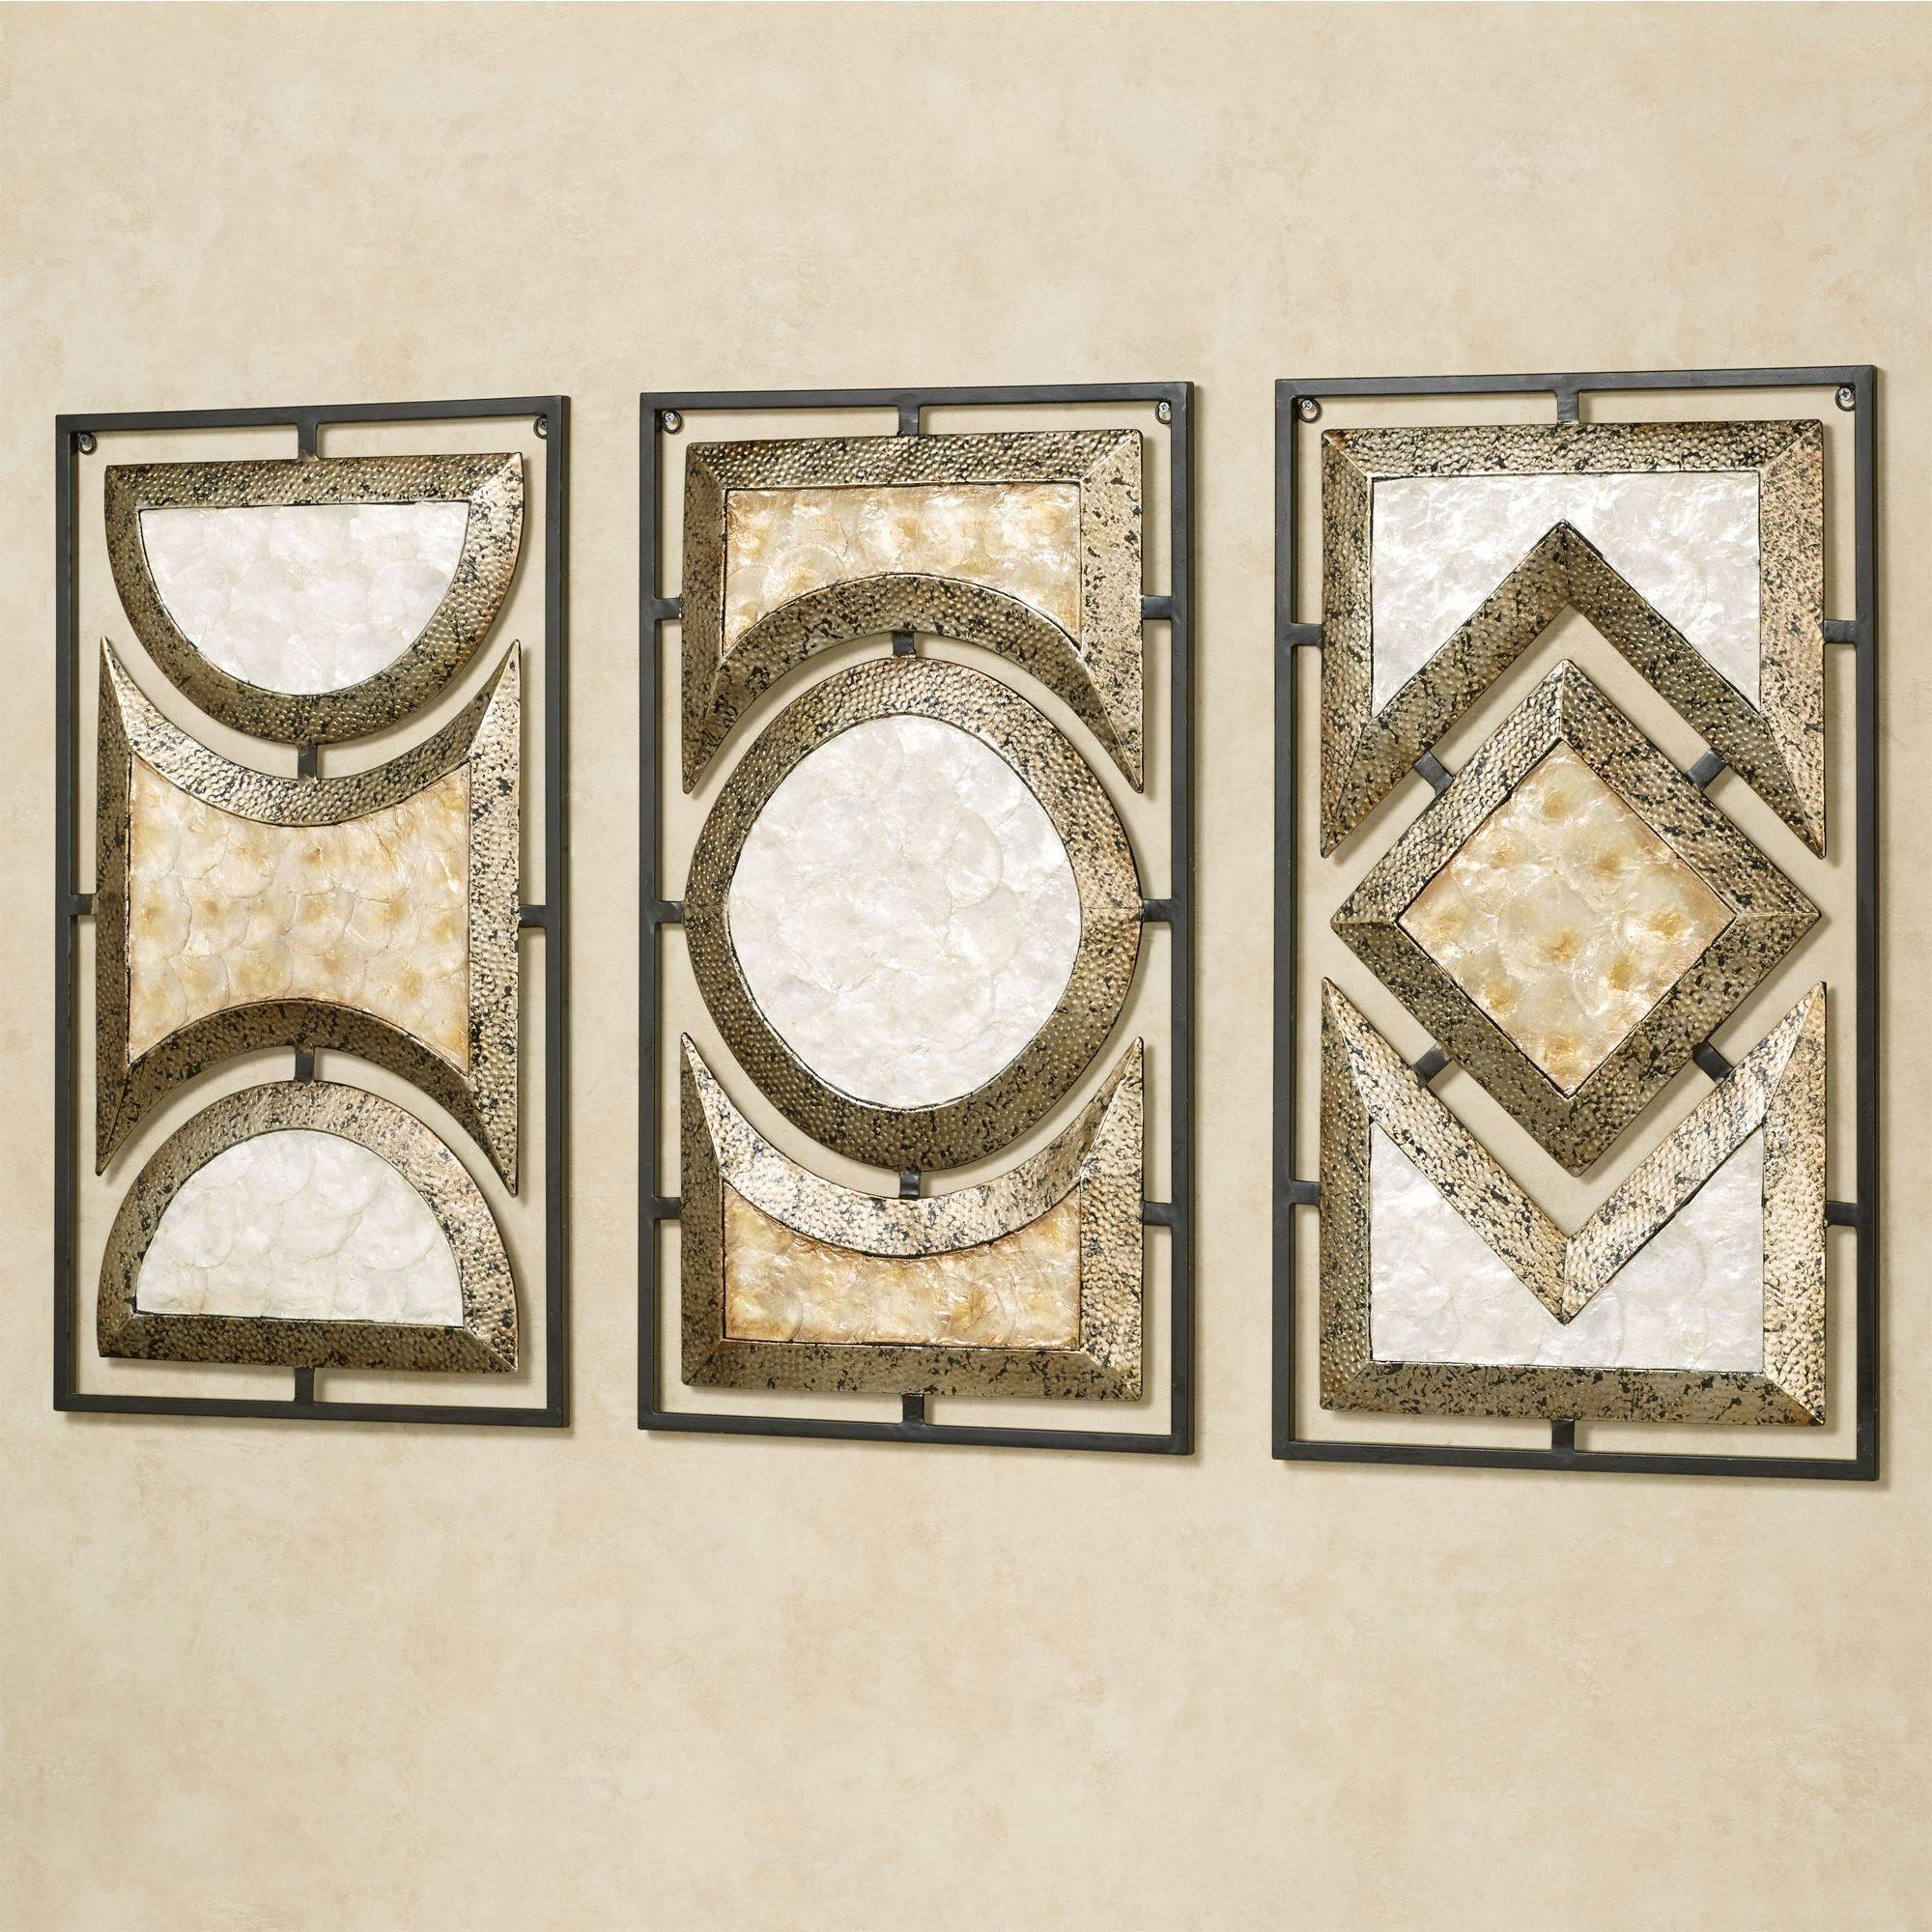 Wall Art, Metal Wall Art, Wooden Wall Art | Touch Of Class Pertaining To Most Recent Metal Wall Artworks (View 15 of 20)